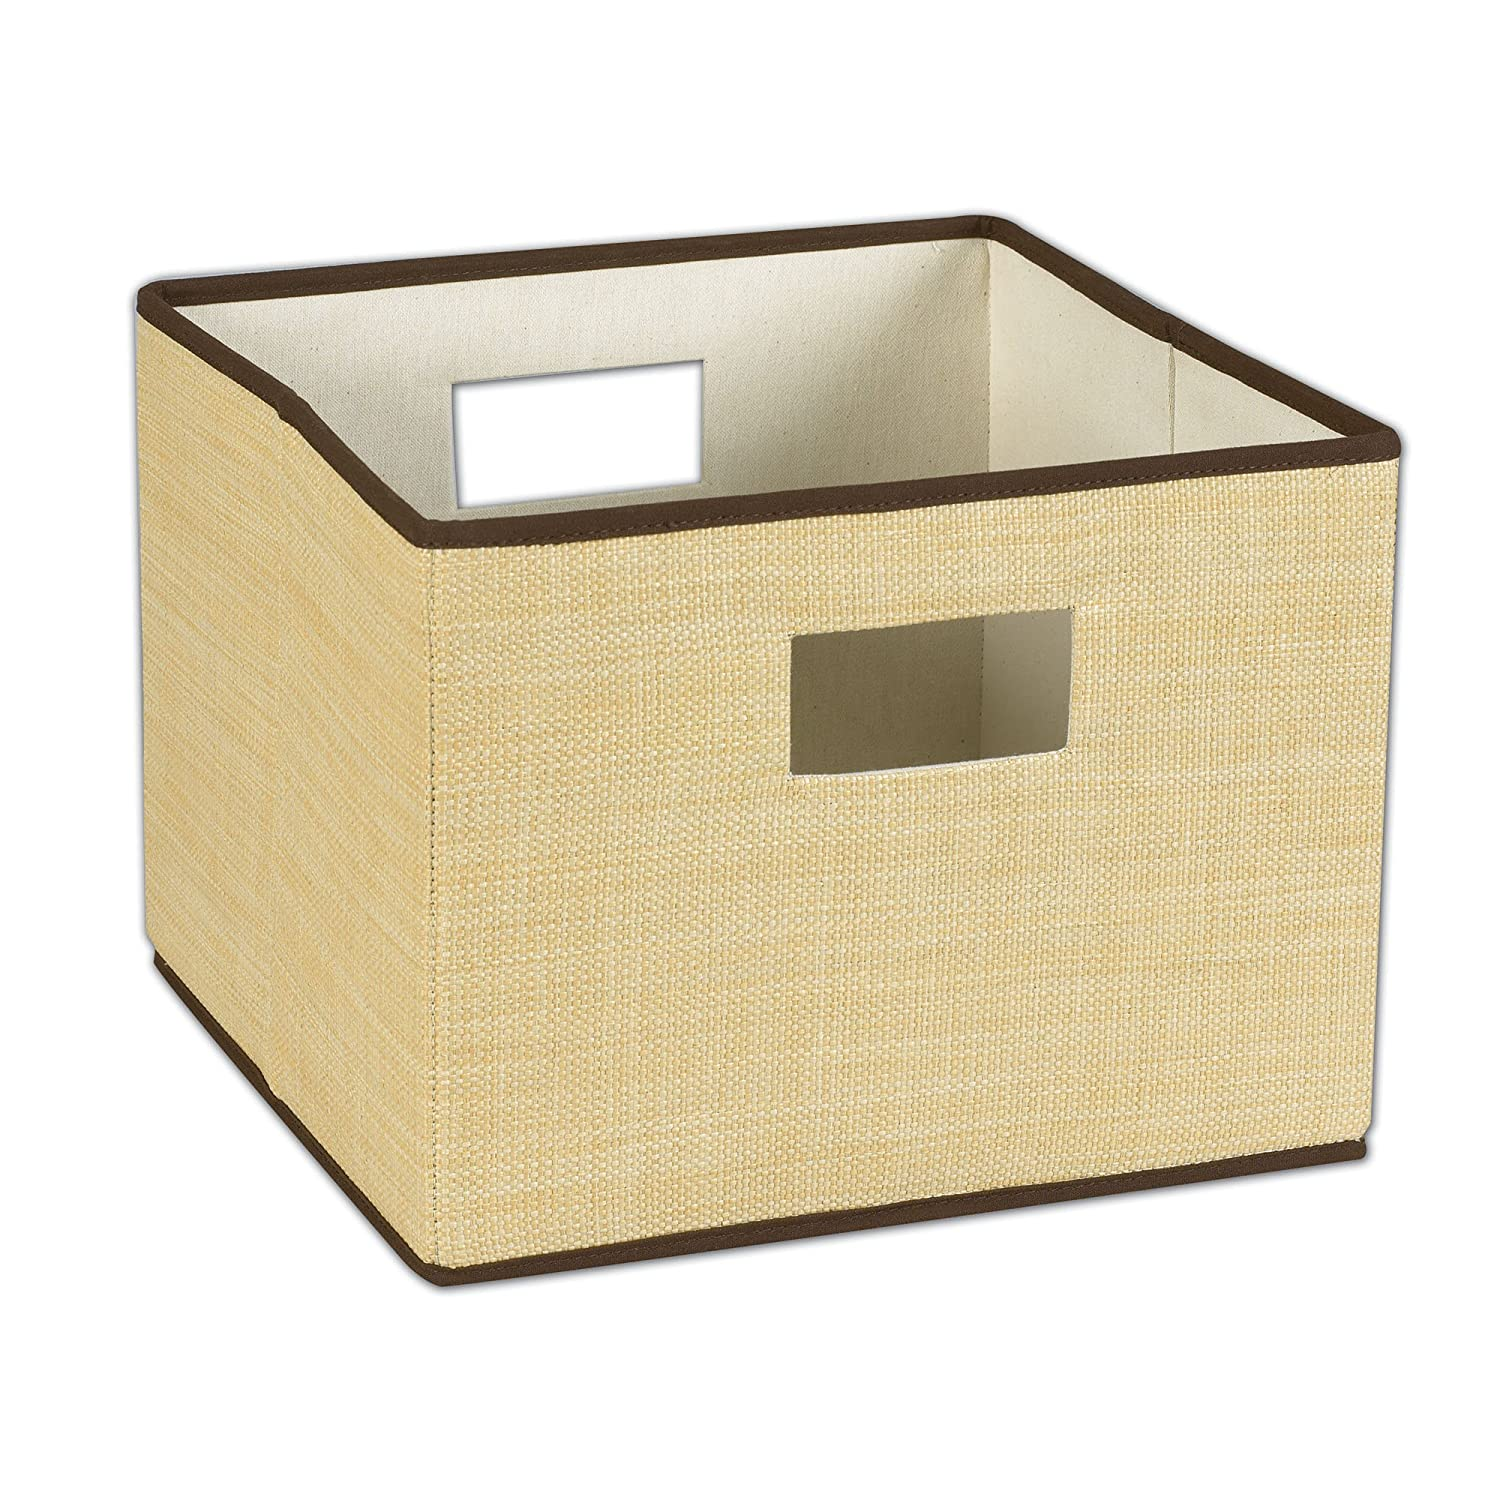 Superbe Amazon.com: Household Essentials Resin Storage Bin With Handles, Wheat With  Brown Trim: Home U0026 Kitchen